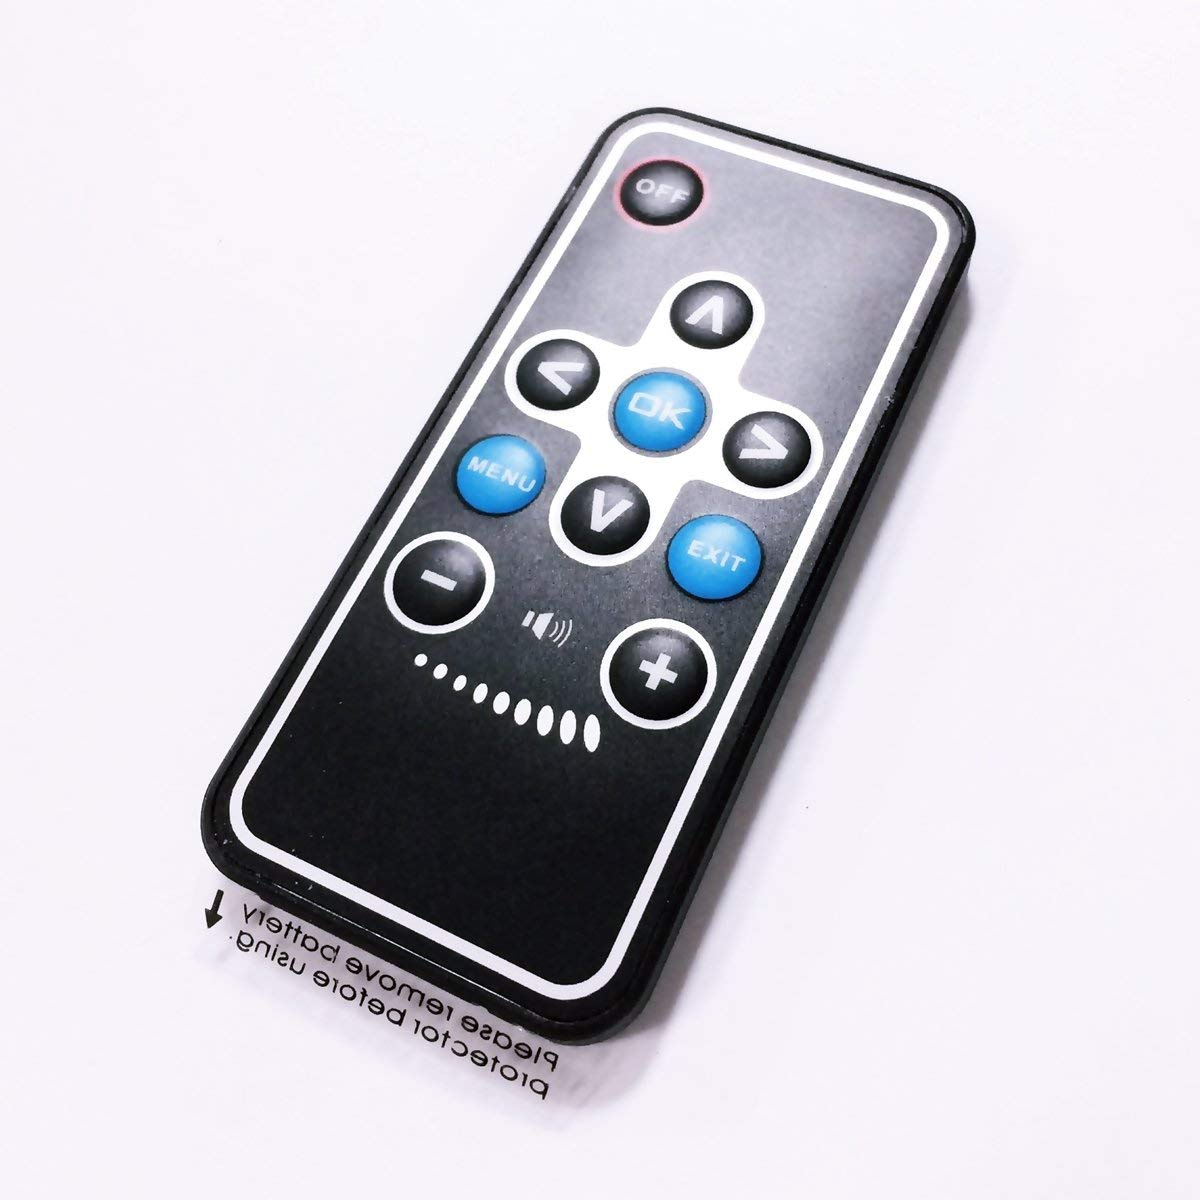 AIPTEK POCKET DV8800 PVR MPVR+ DZO-V58 WINDOWS 8 DRIVER DOWNLOAD